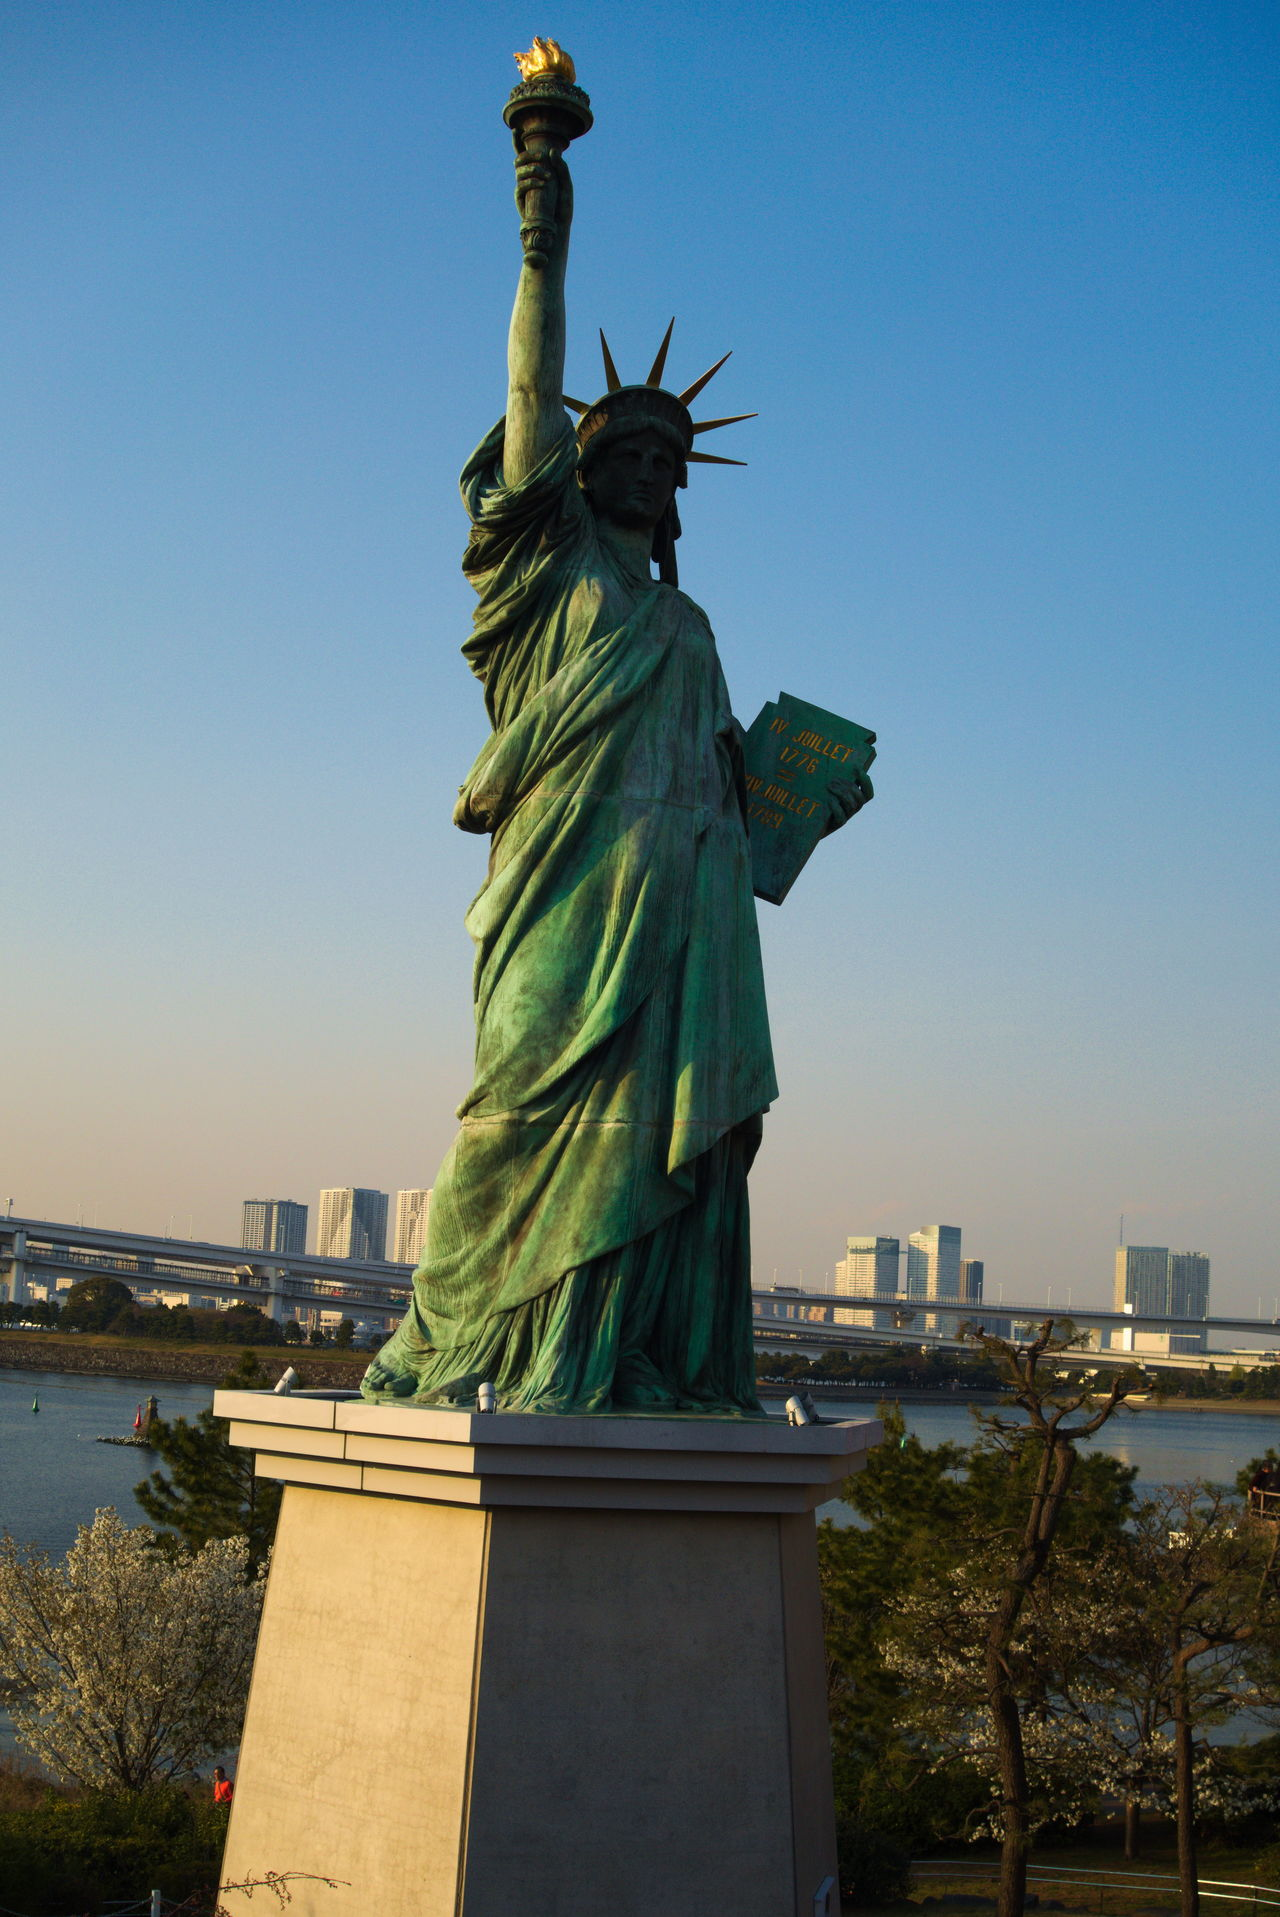 Statue of Liberty , Odaiba Tokyo, Japan Architecture Art And Craft Beautiful Woman Building Exterior Built Structure City Clear Sky Crown Day Female Likeness Freedom Human Representation Japan Photography Japanese Culture No People Outdoors Sculpture Sky Statue Statue Of Liberty Toga Torch Torchlight Travel Destinations Water_collection